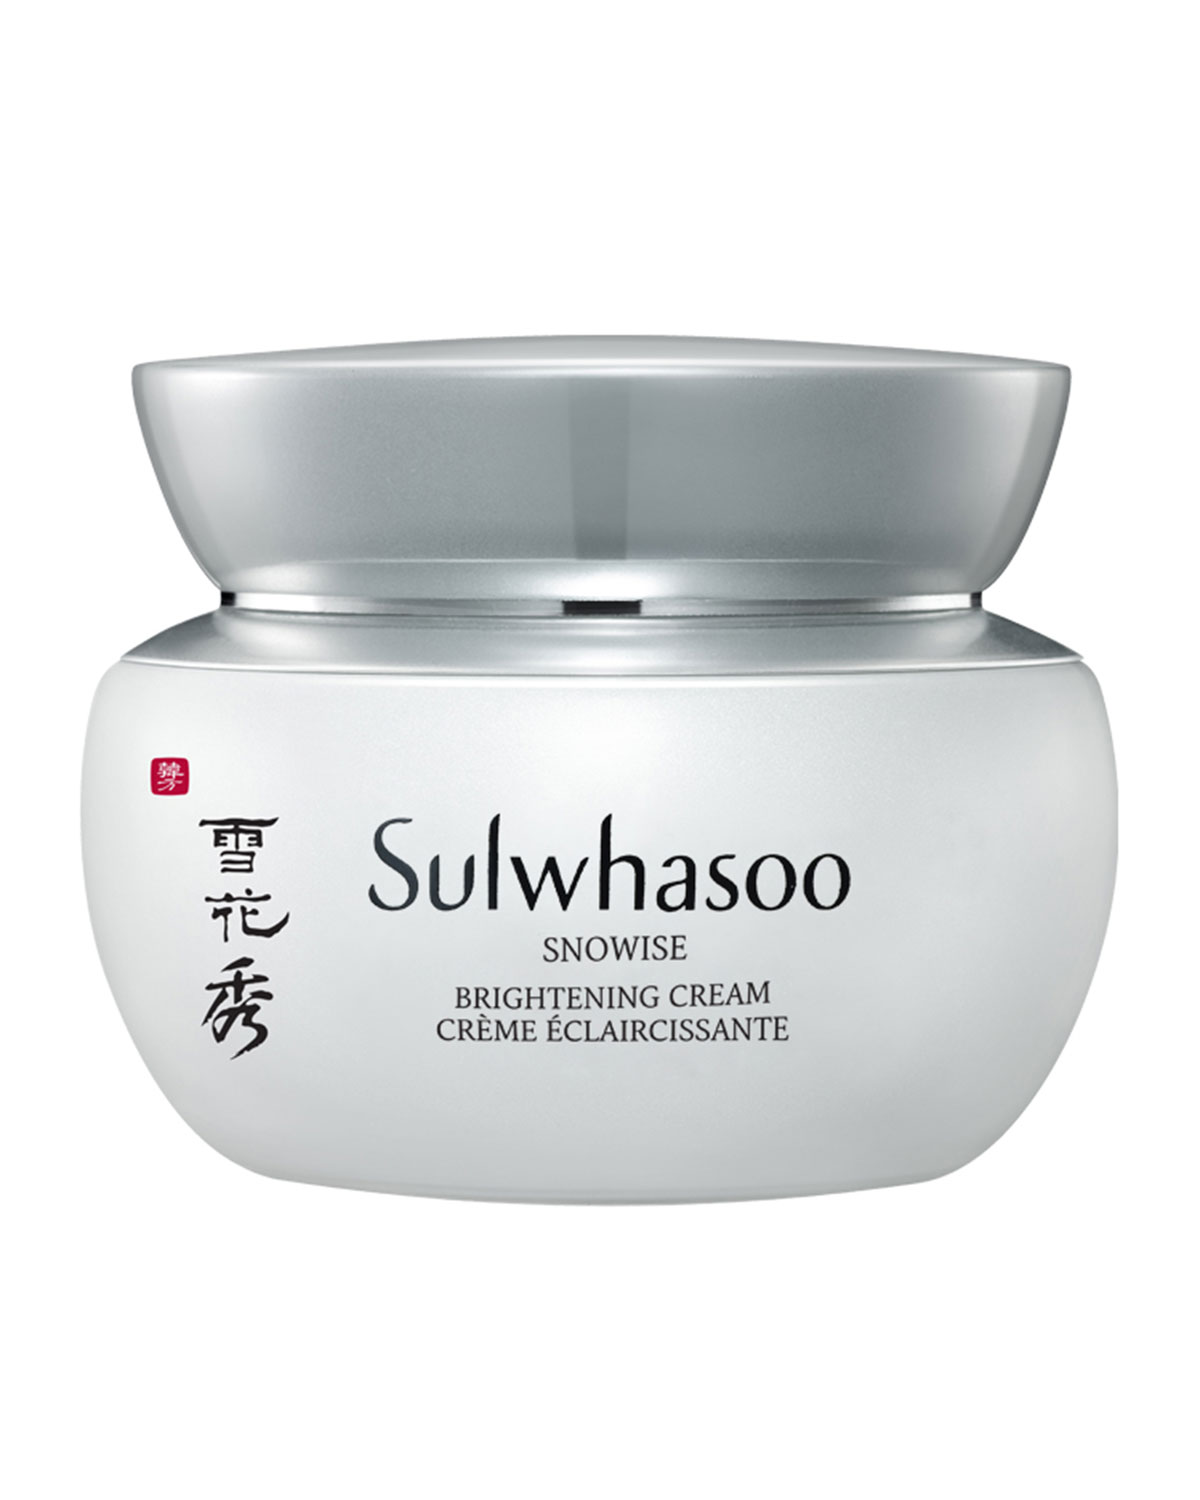 Snowise EX Brightening Cream, 50 mL - Sulwhasoo